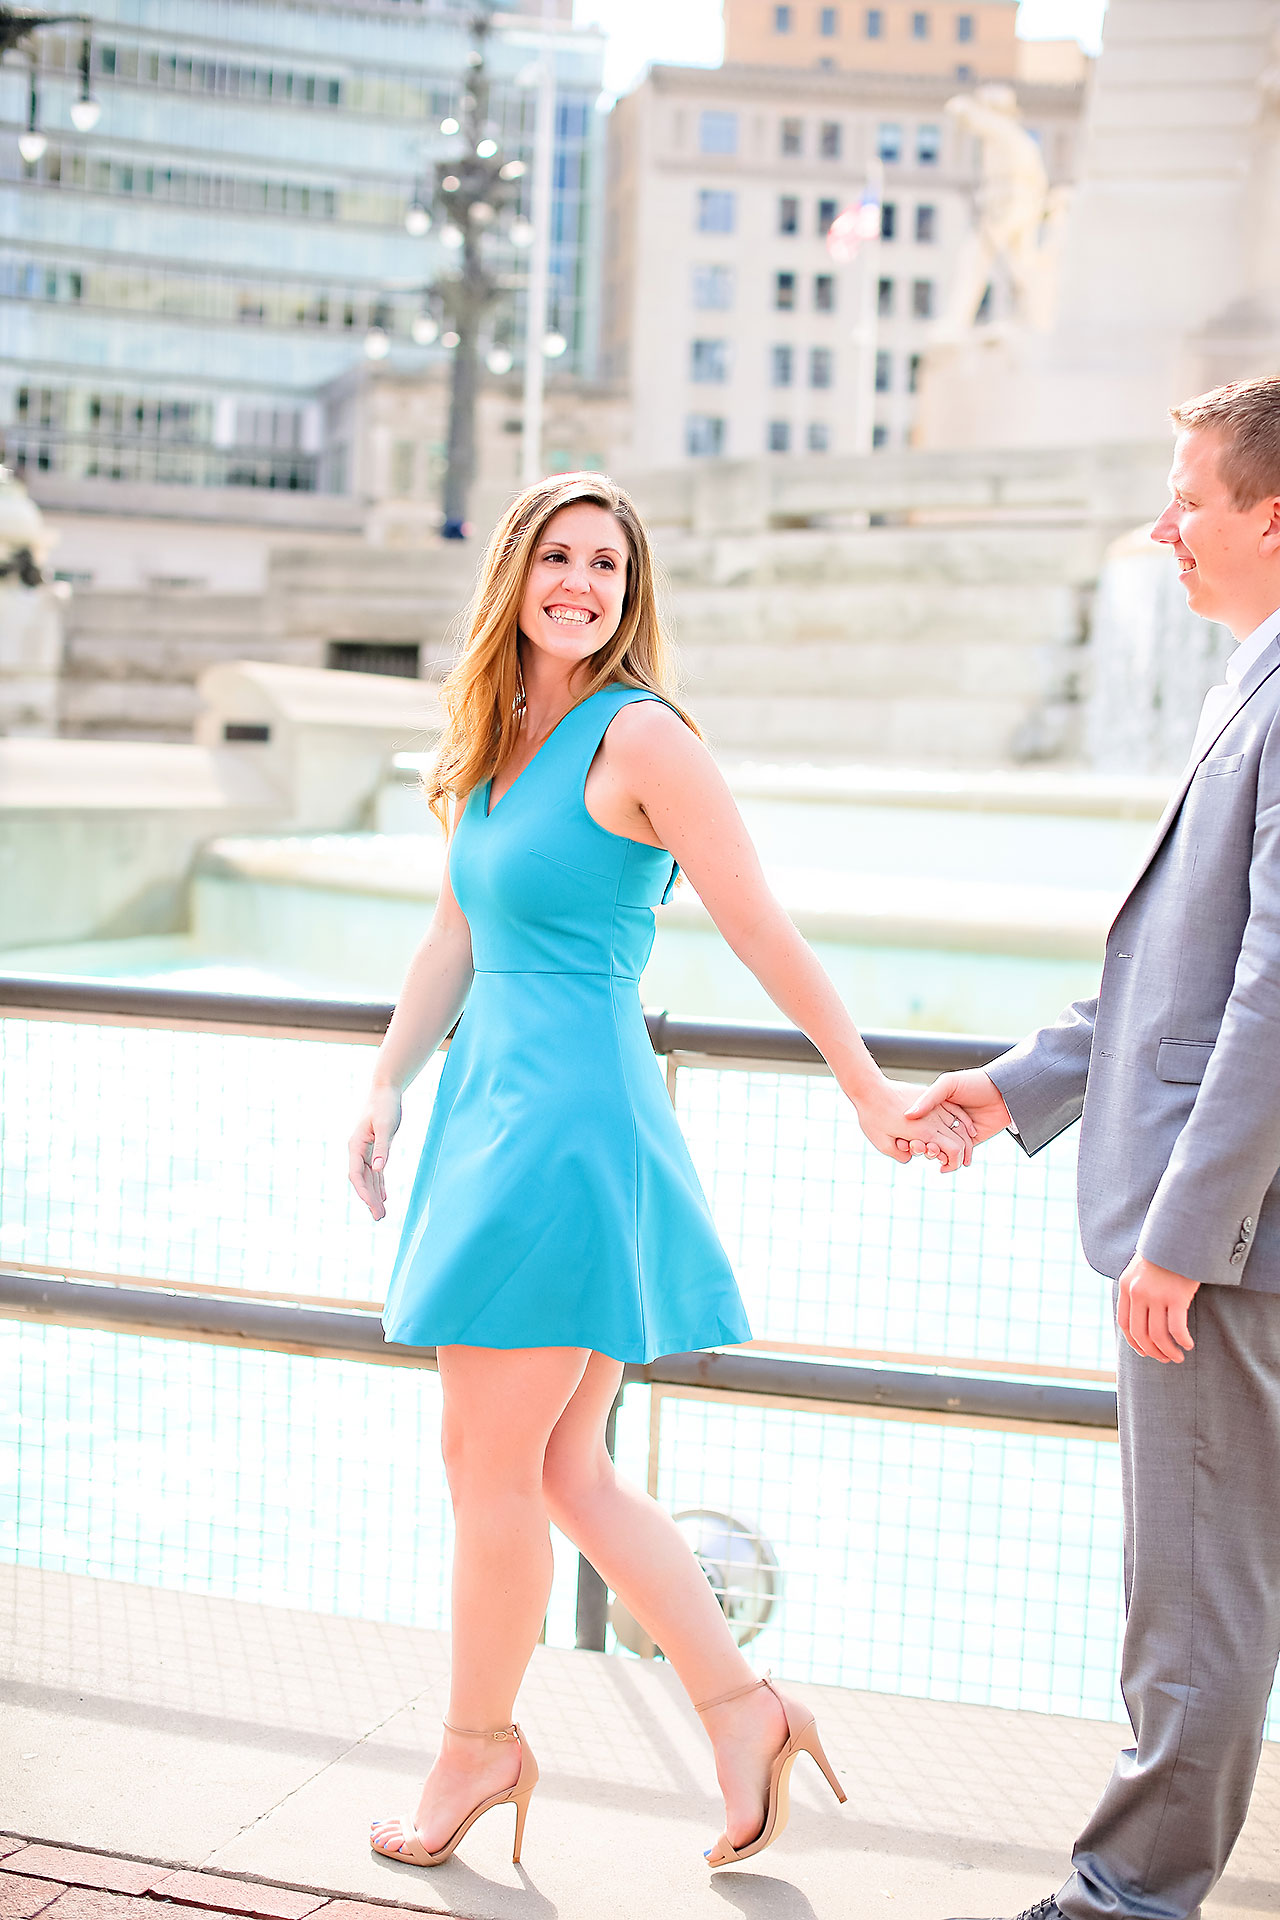 Chelsea Jeff Downtown Indy Engagement Session 030